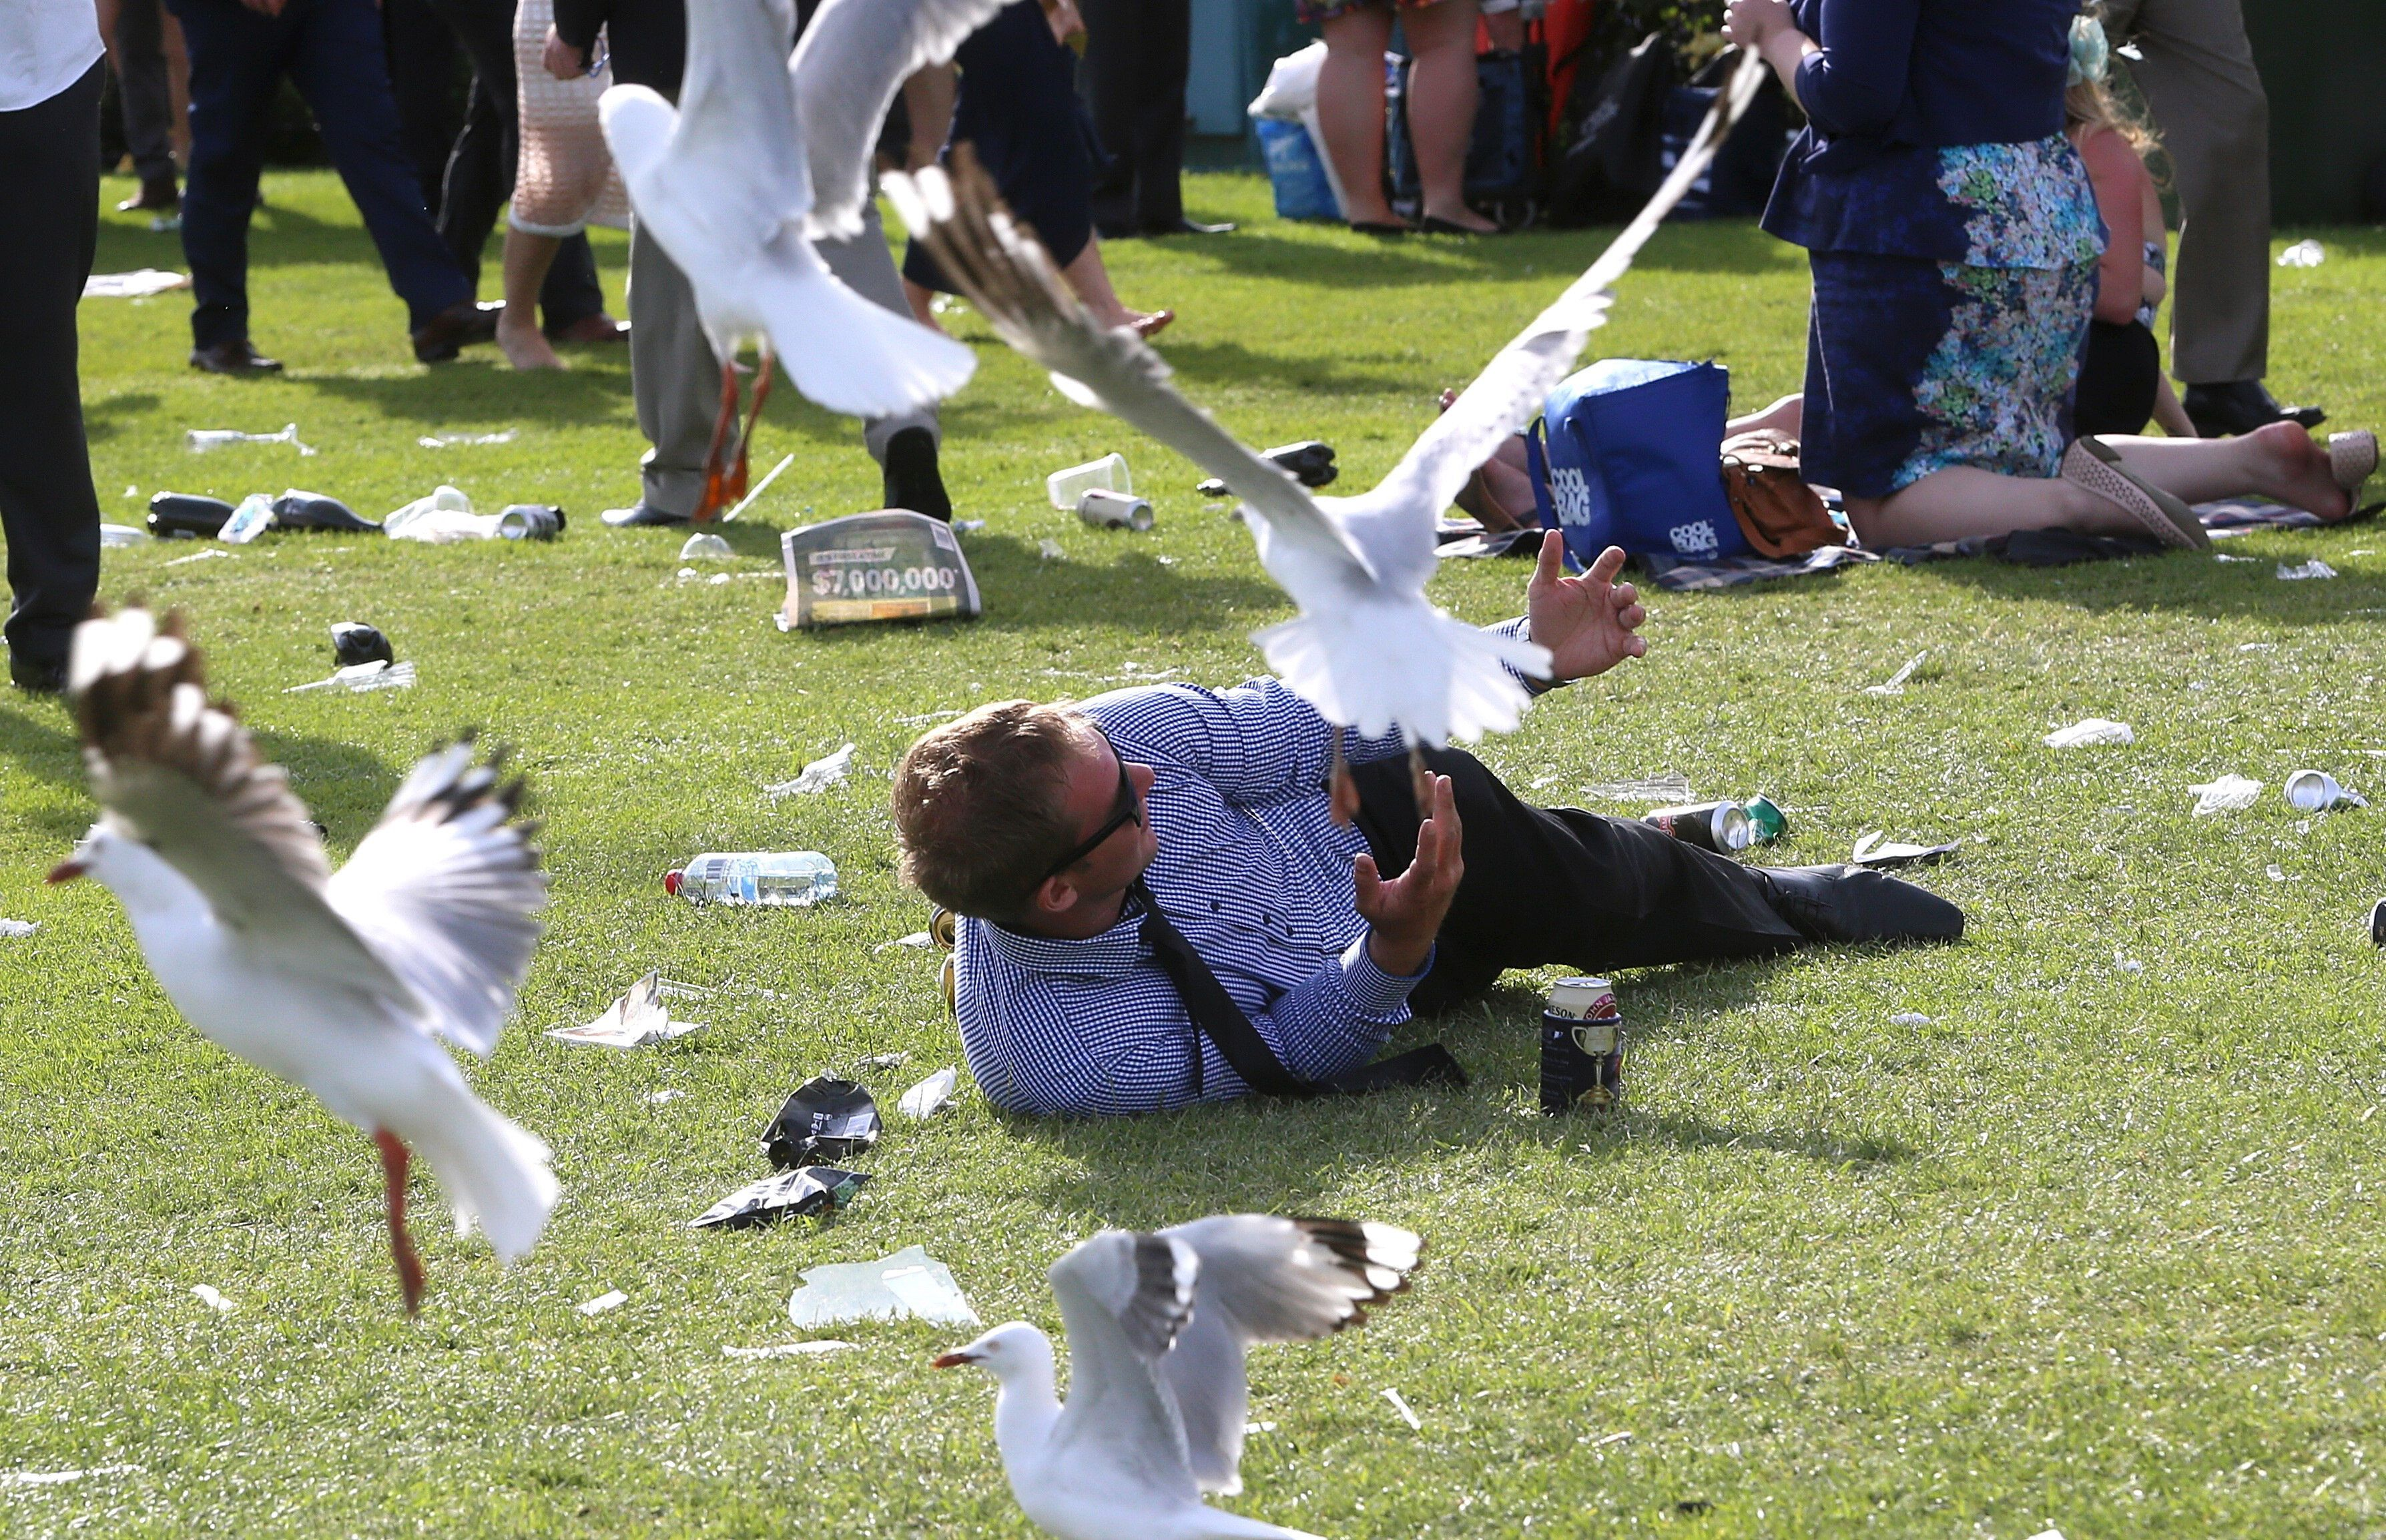 Brits Warned Of Seagulls Across The UK 'Tripping On